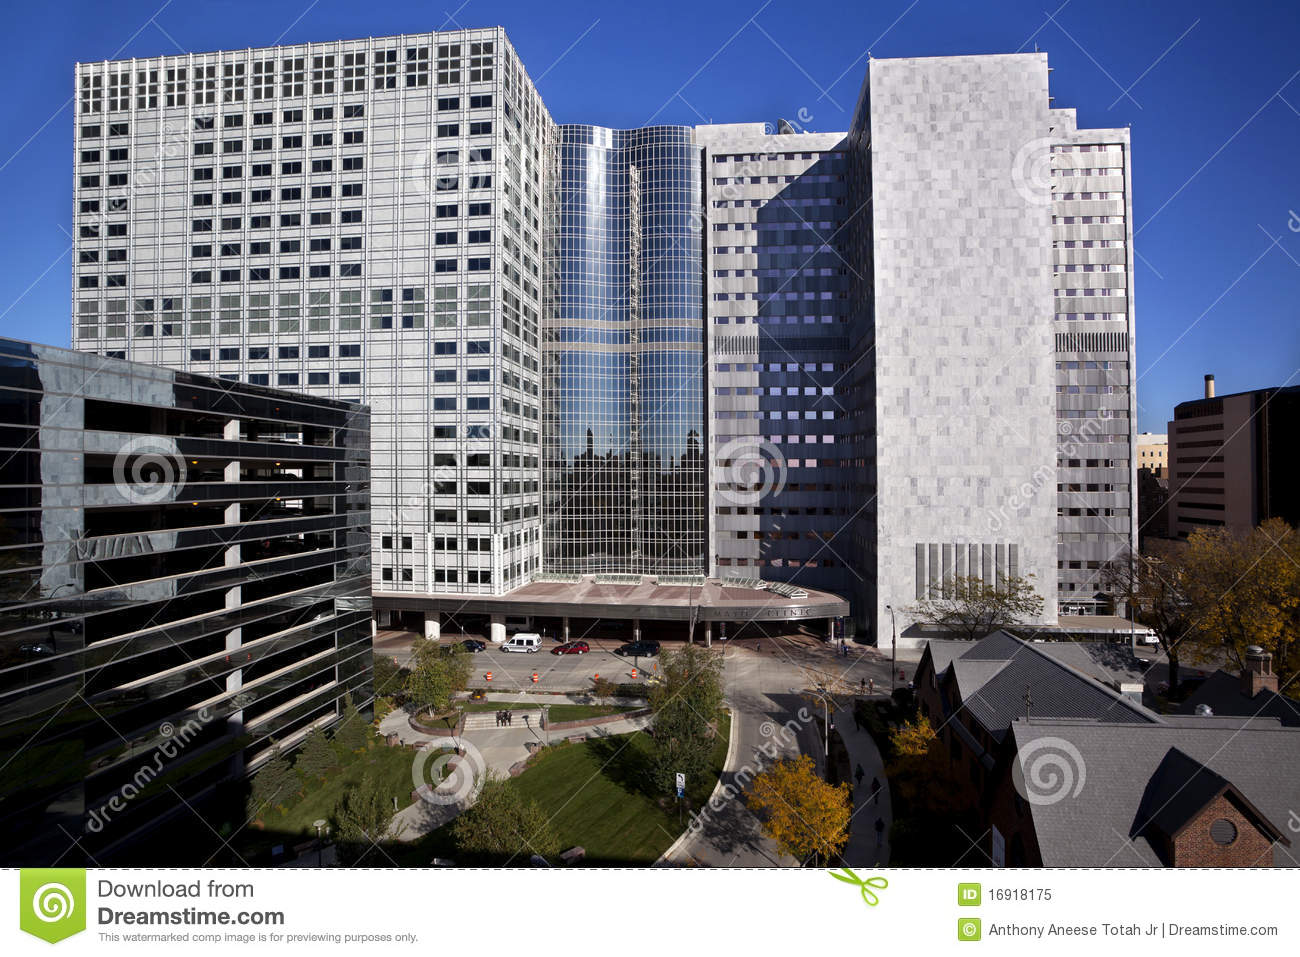 The famous Mayo Clinic Medical Center in Rochester, Minnesota.